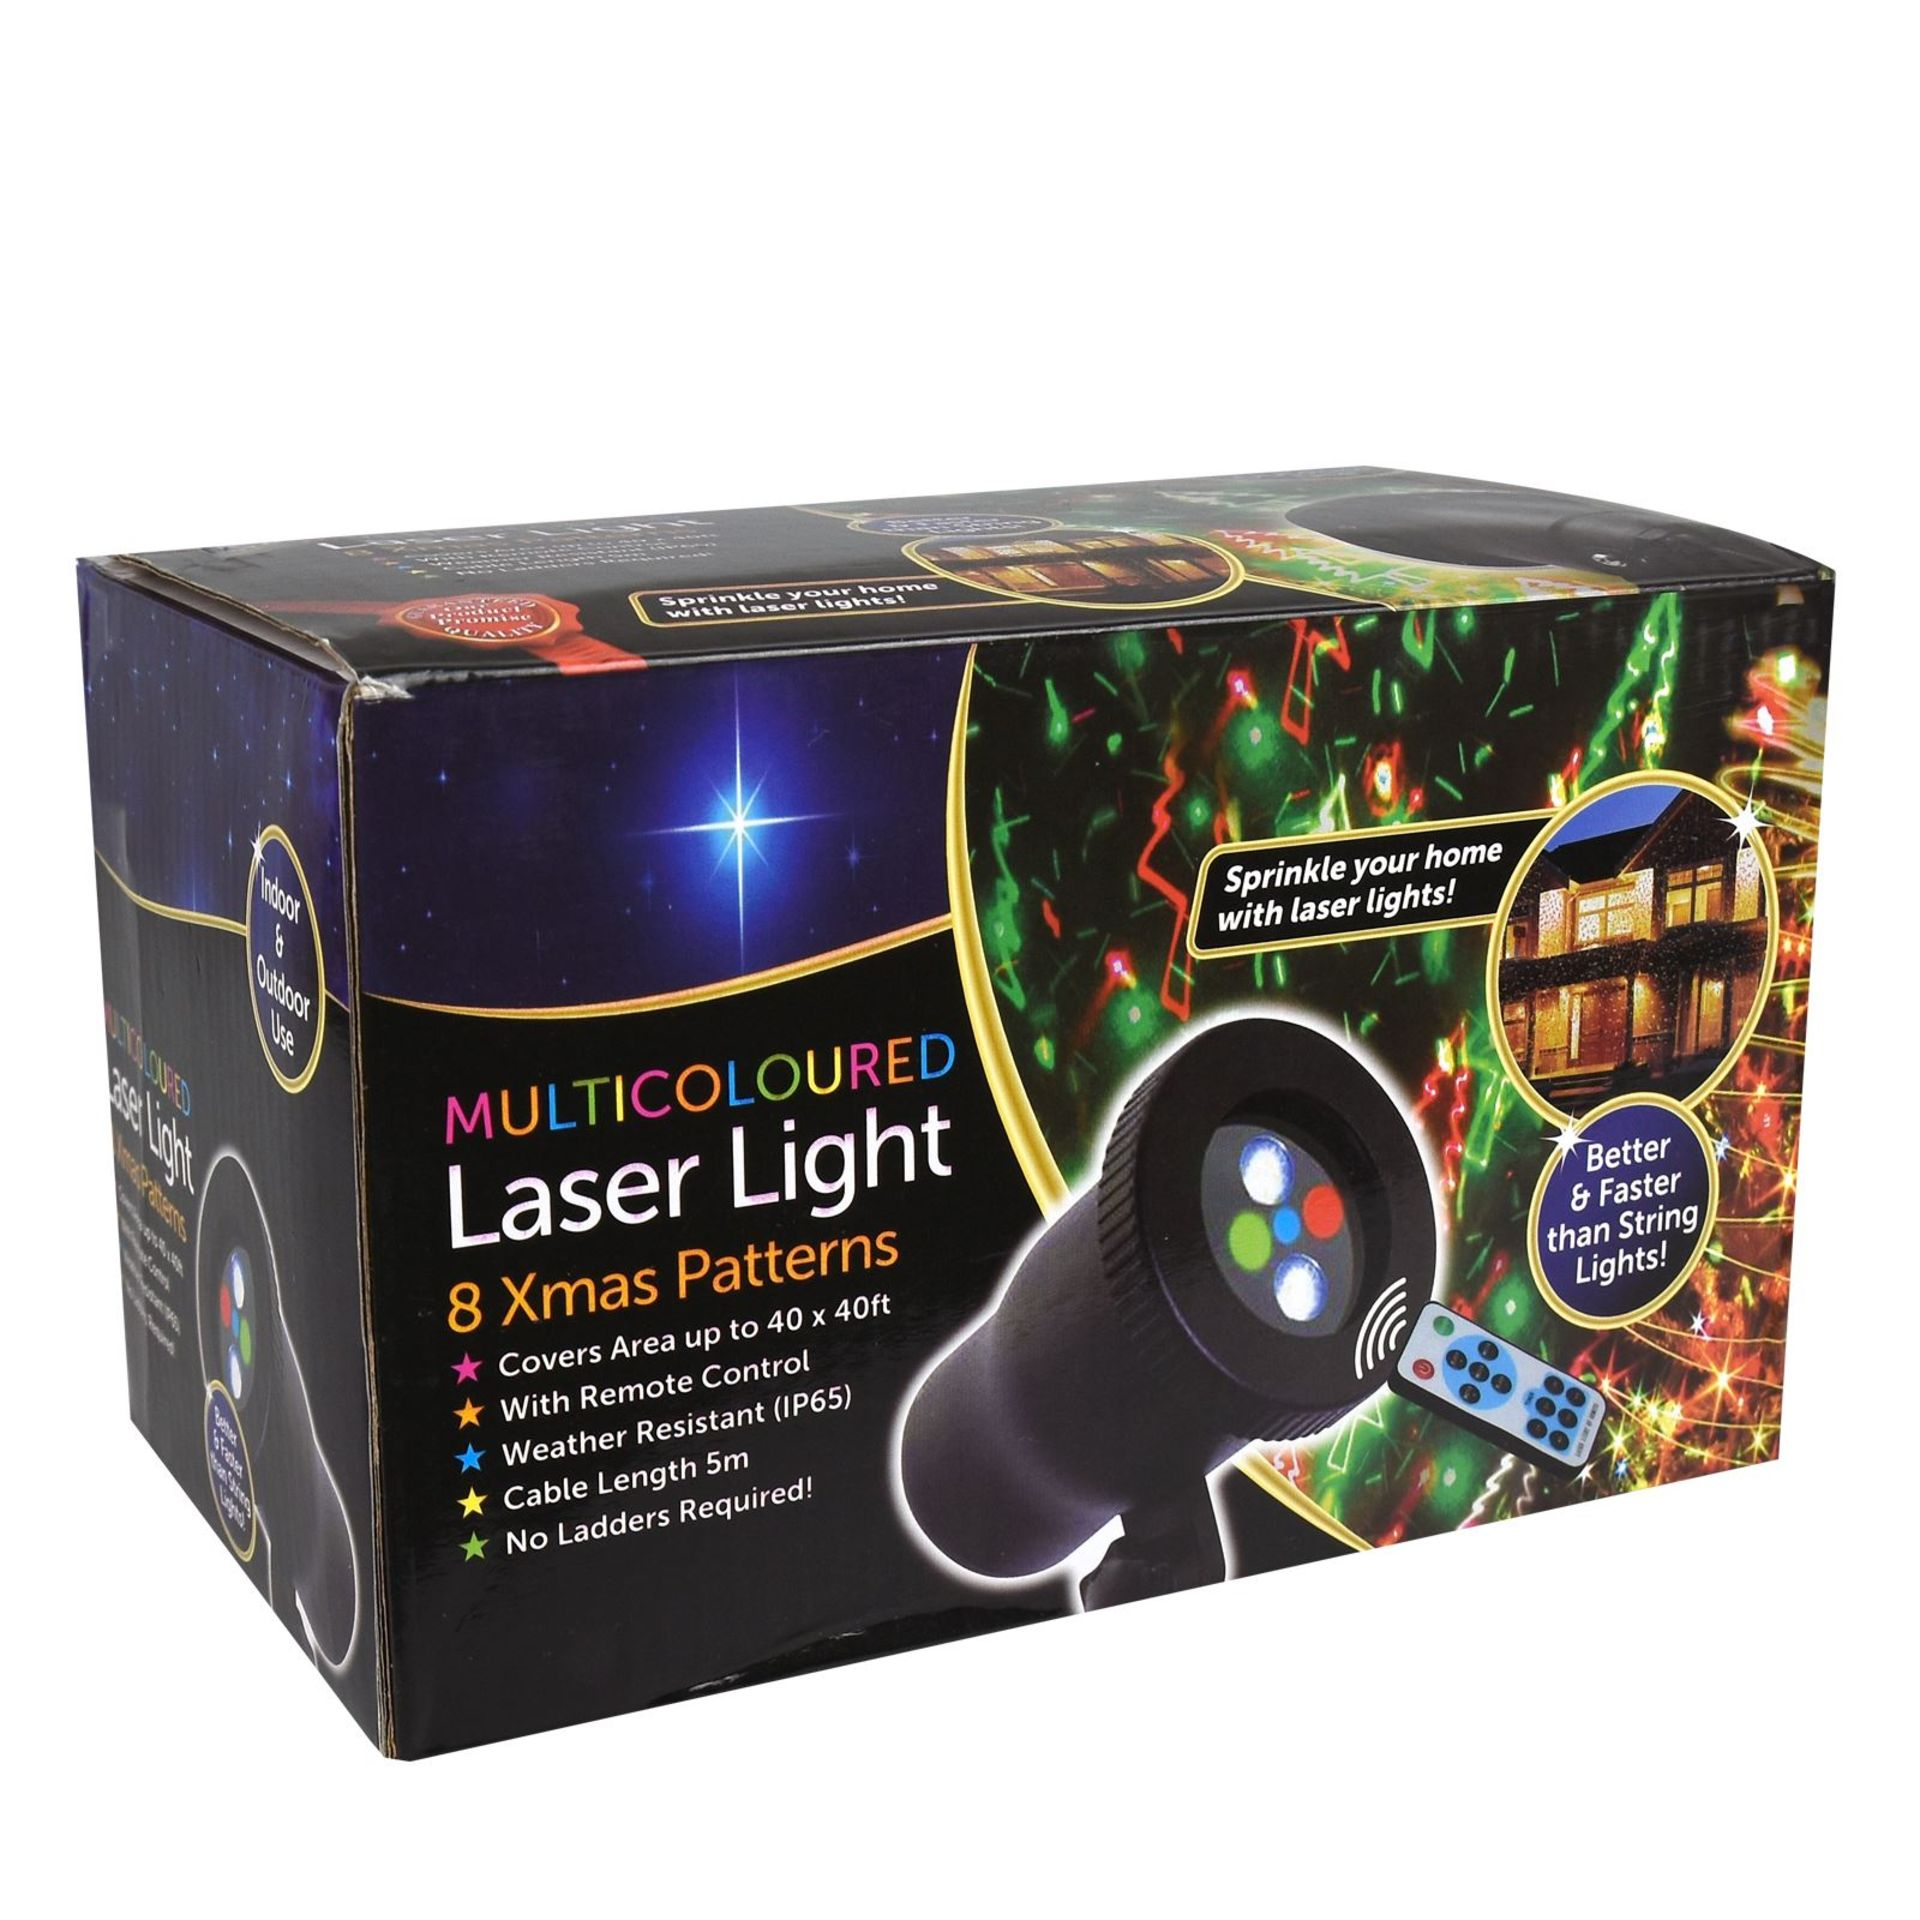 Lot 18019 - V Brand New Multicoloured 8 Christmas Pattern Laser Light - Covers Area Up To 40 x 40ft - Weather